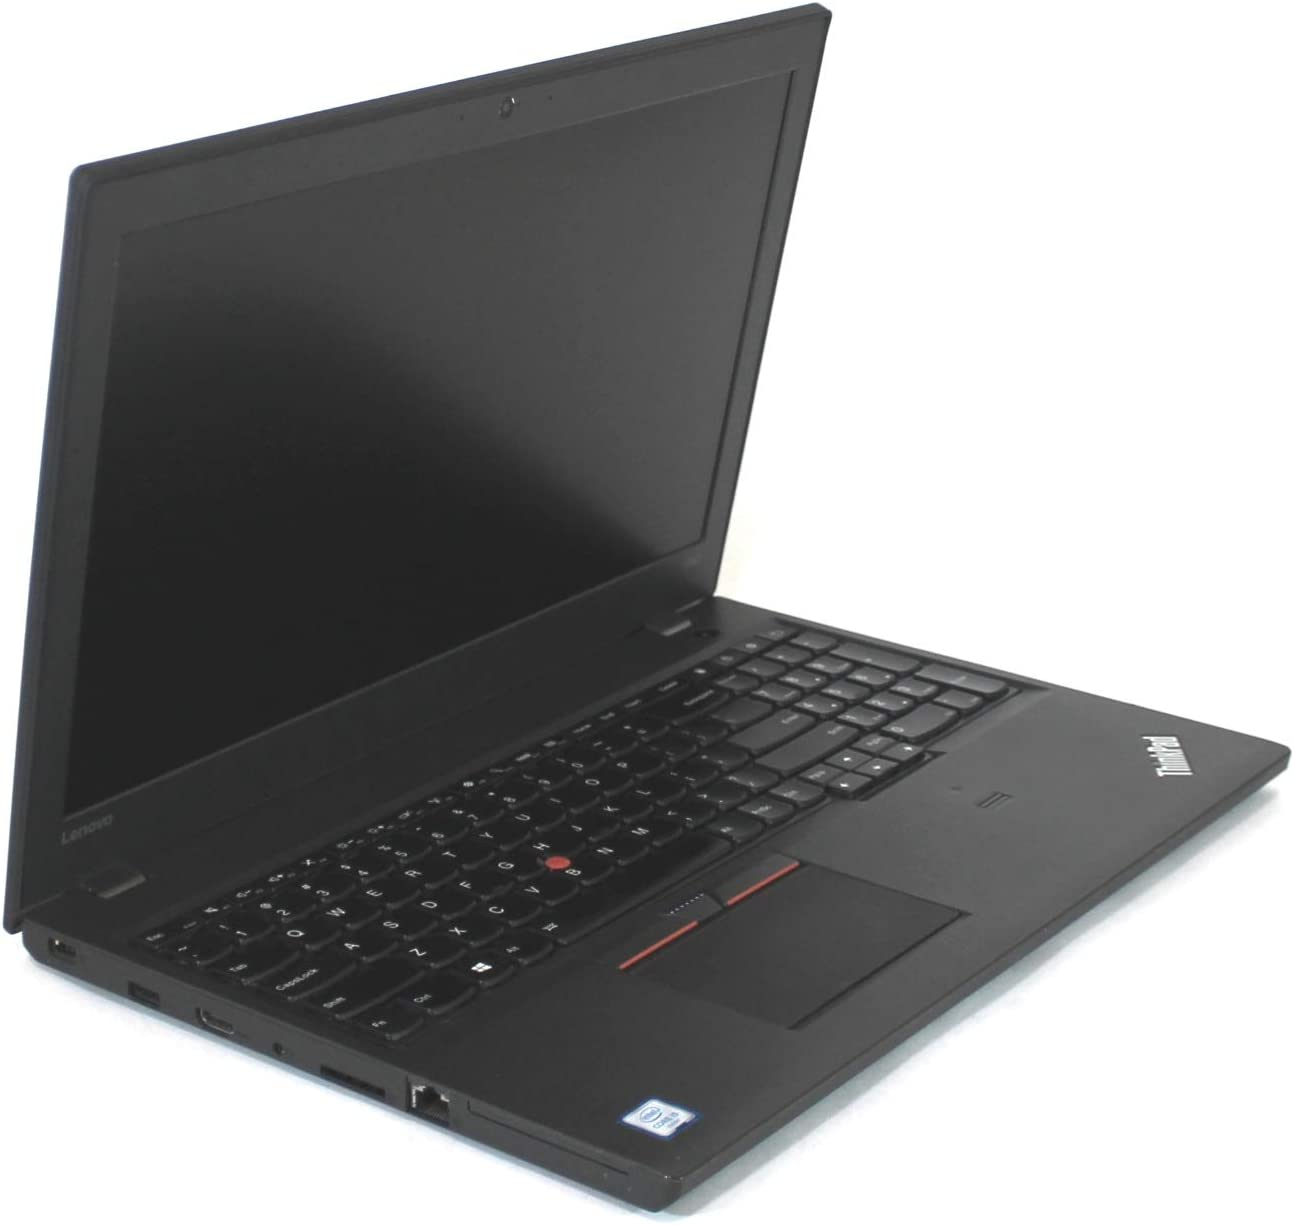 "Lenovo ThinkPad T560 Notebook Laptop 15.6"" FHD Display / Intel Core i5-6300U 2.4Ghz / 8GB RAM / 256GB SSD / Windows 10 Pro / Black (Renewed)"